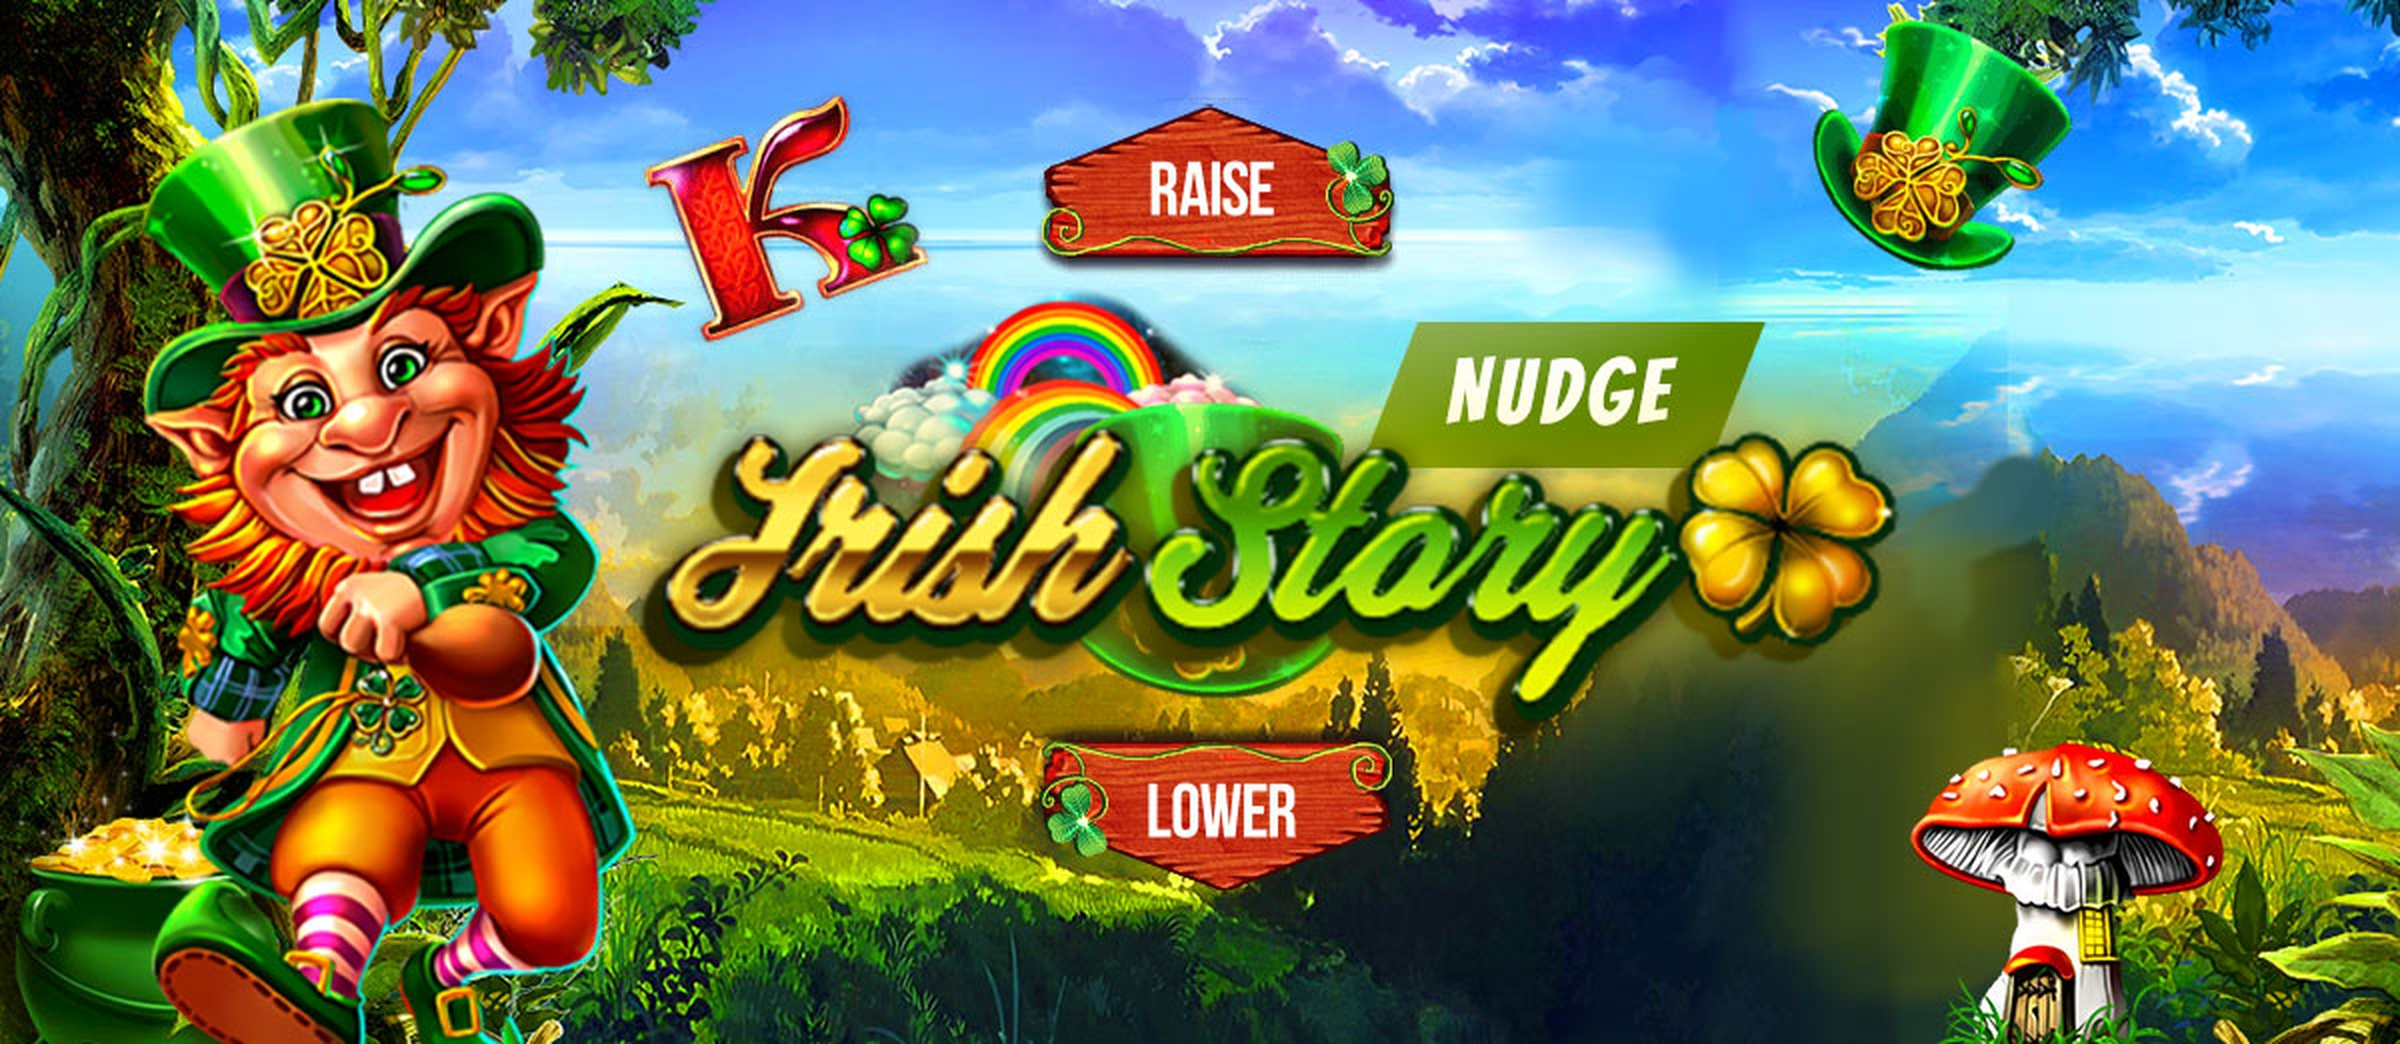 Irish Story Online Slot Demo Game by Inbet Games